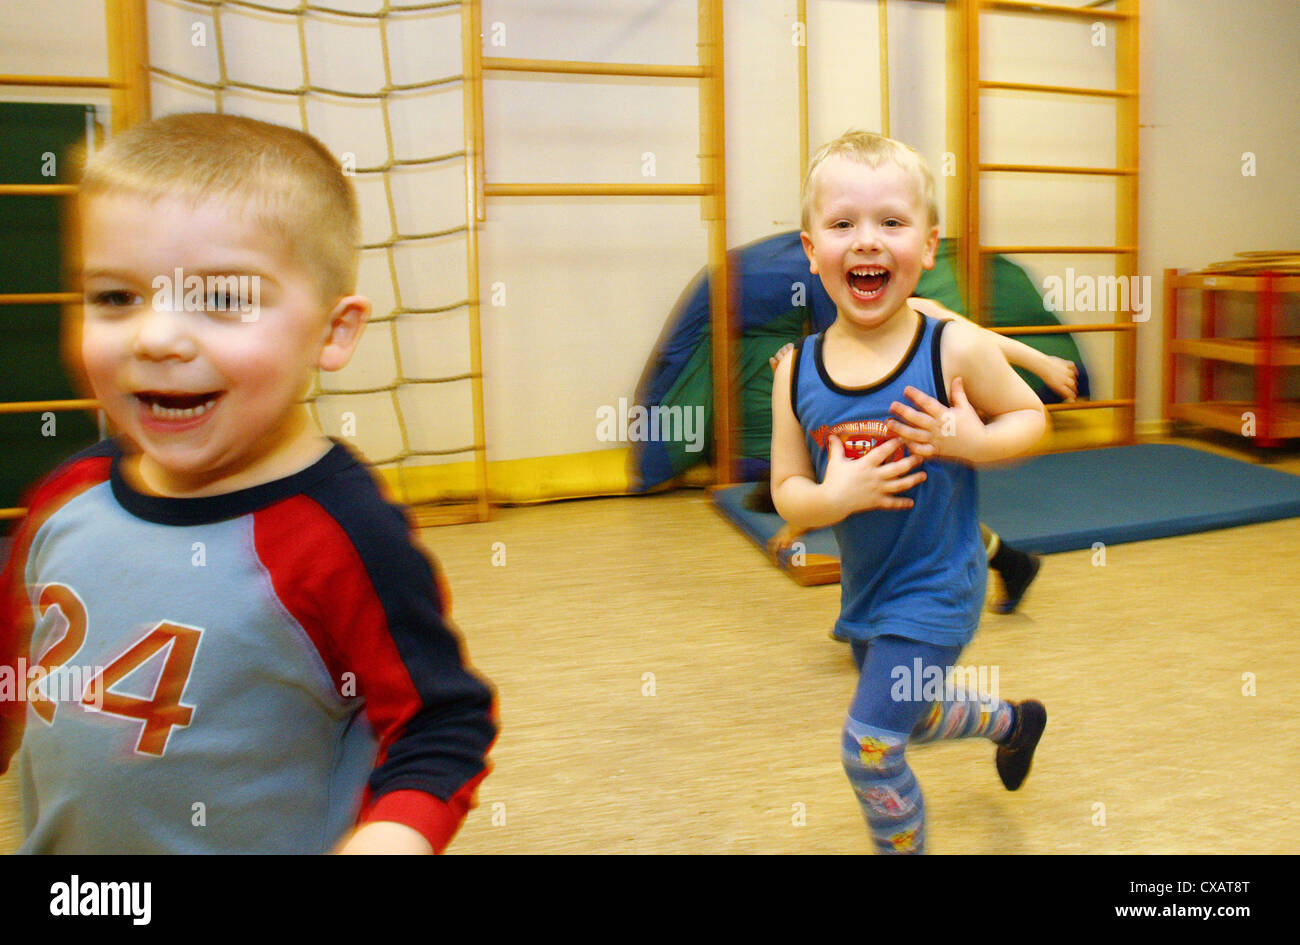 Physical Education in a Kindertagesstaette Stock Photo